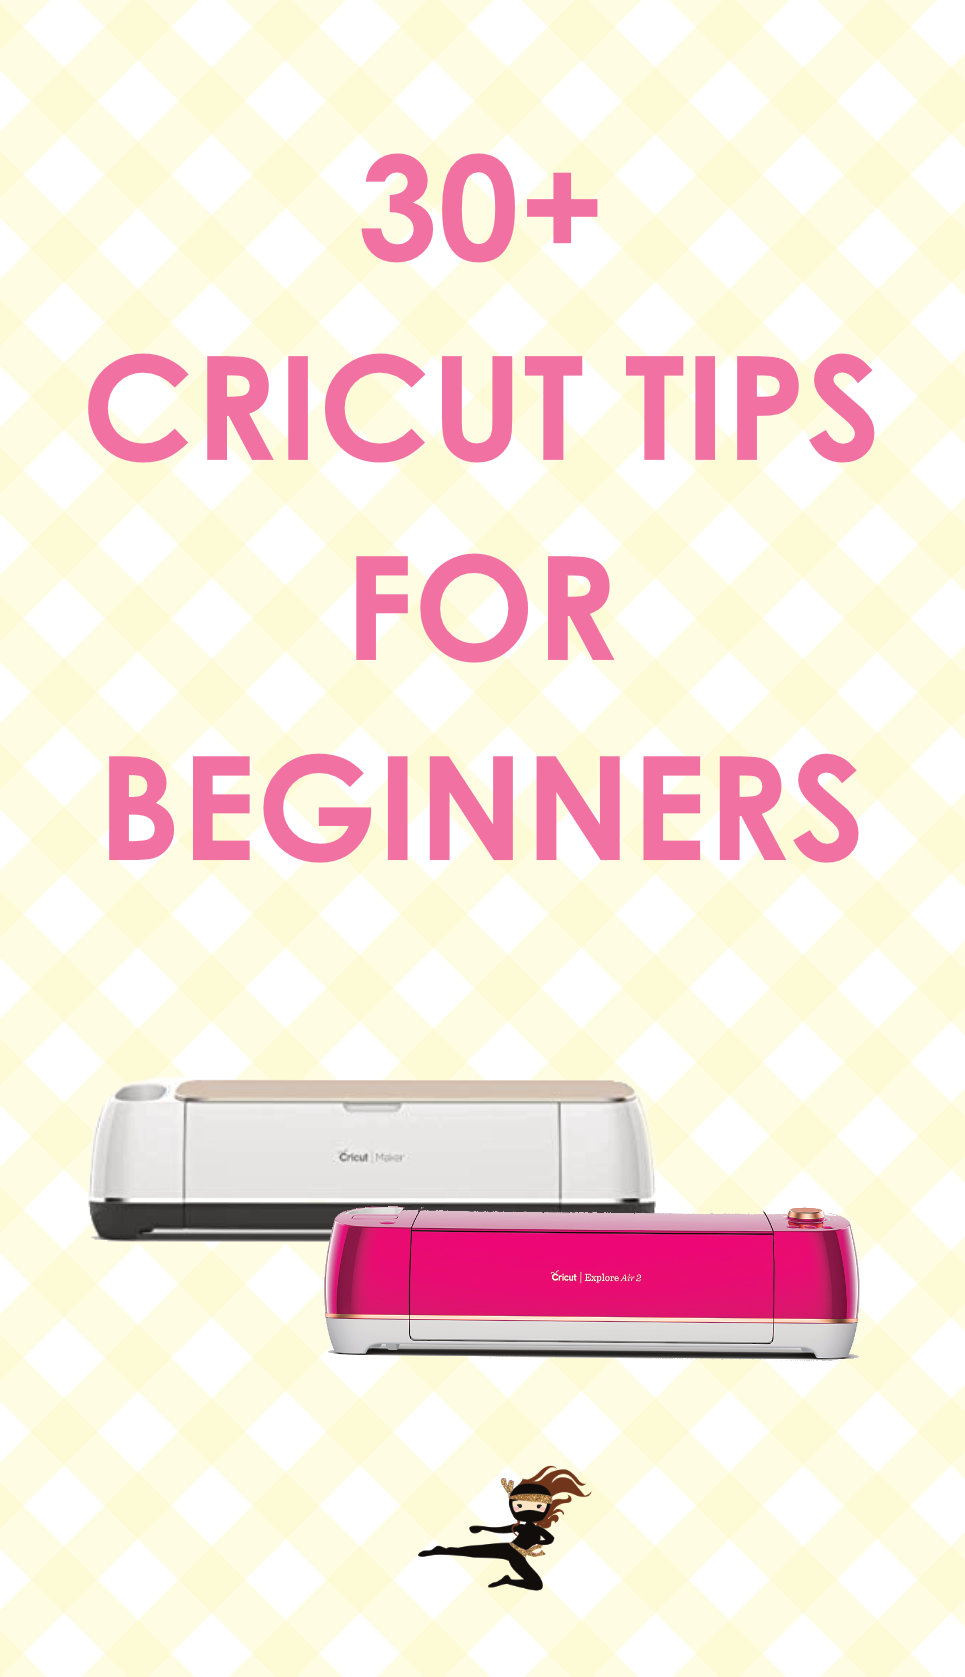 Check out this post for loads of Cricut tips and hacks for beginners that work with all Cricut machines. You'll find tips for Cricut software, Cricut canvas, HTV, and many other Cricut related tips.